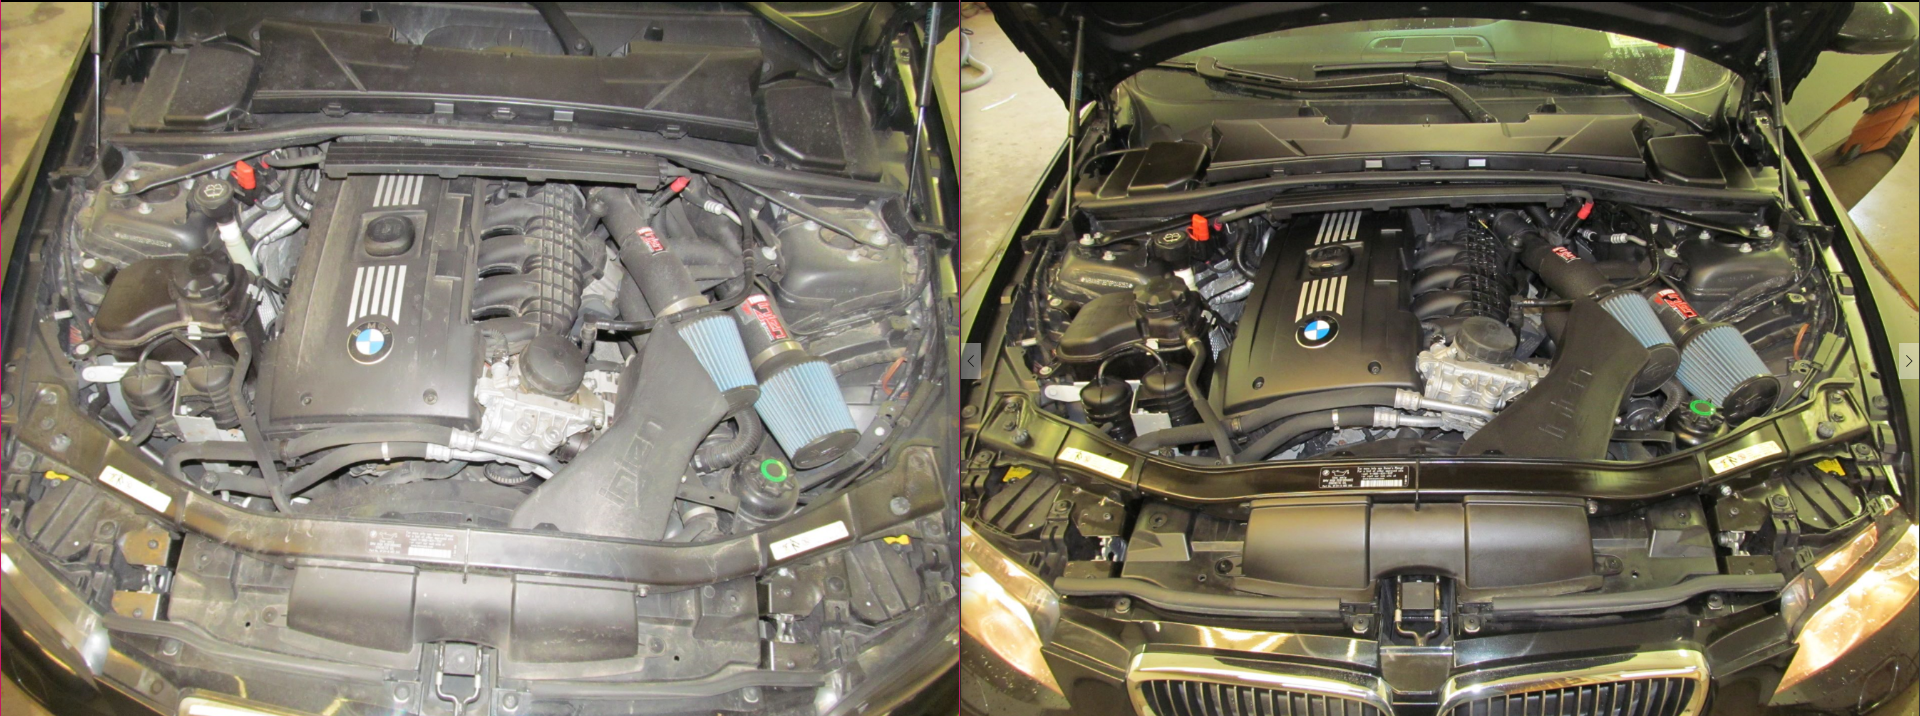 09 BMW 335i Engine